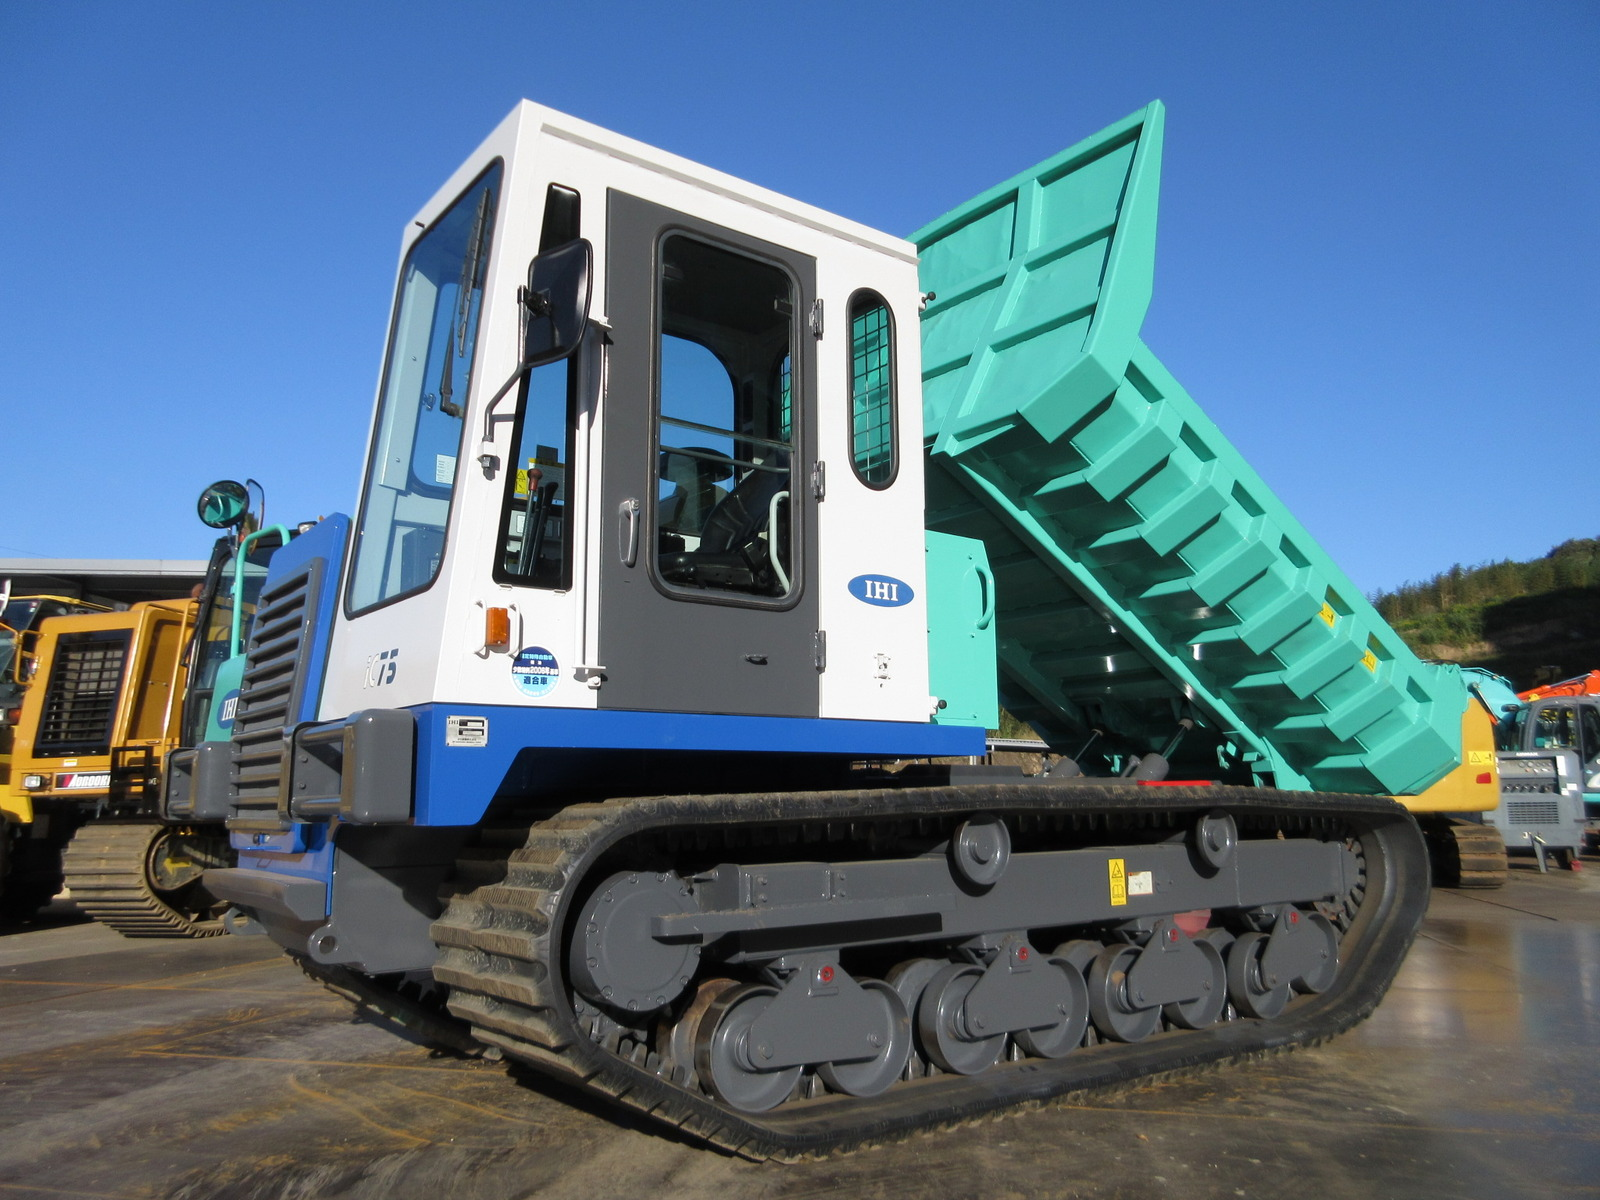 Used Construction Machine used Crawler carrier IHI Construction Machinery IC75 Photos